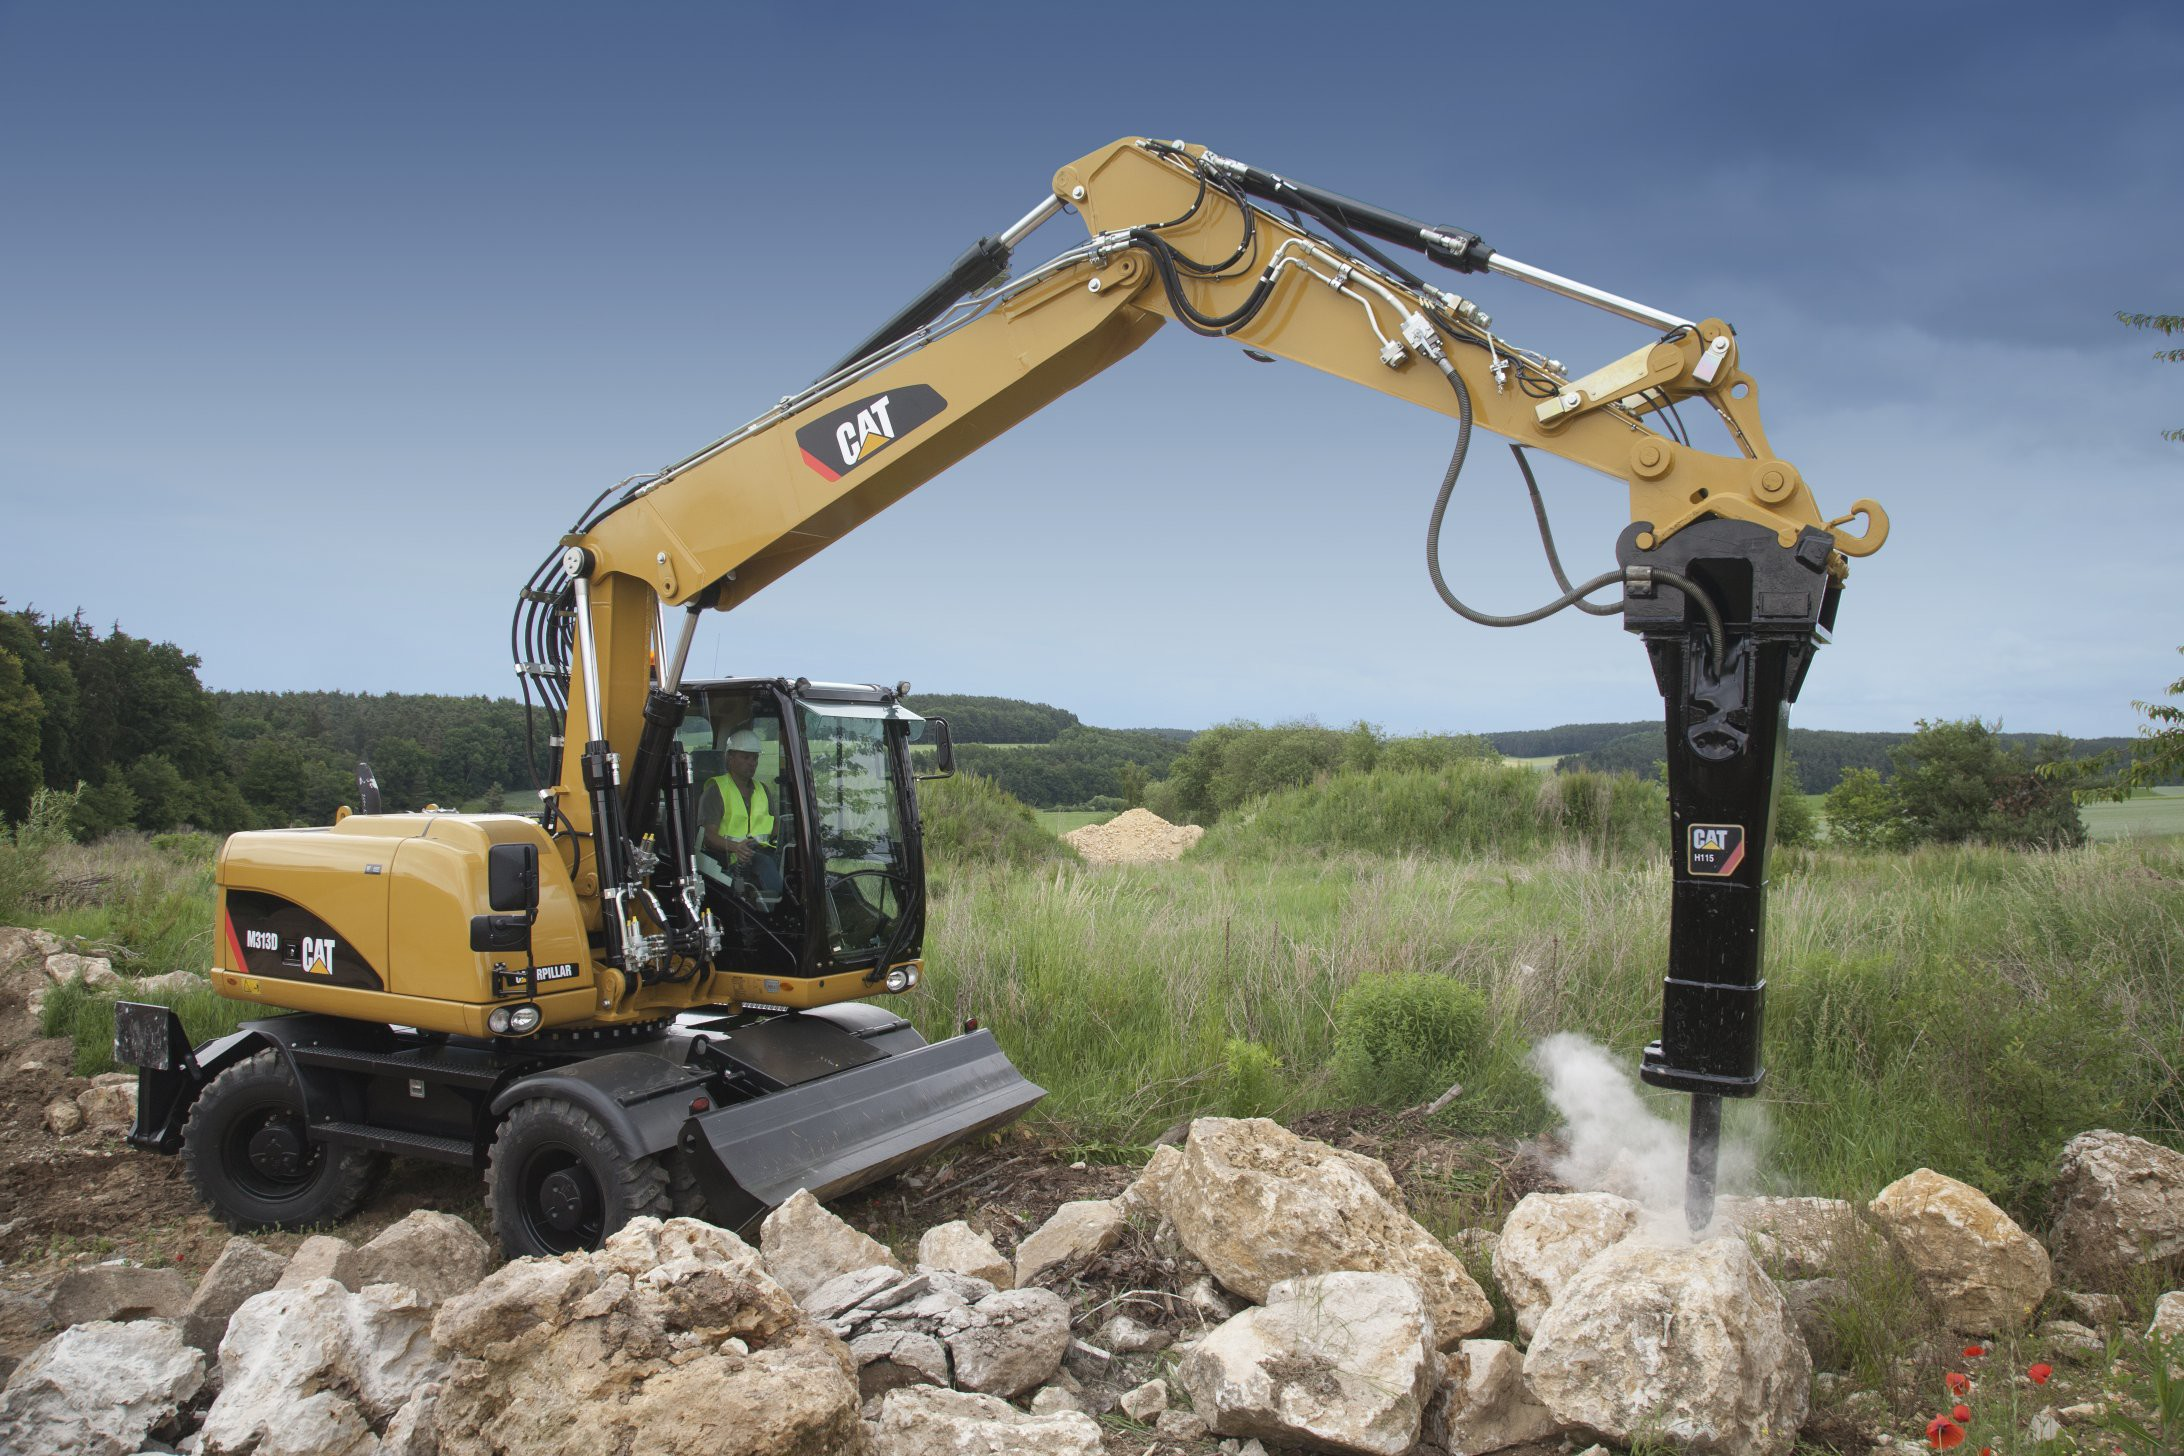 Construction Attachments & Equipment Work Tools for Sale ...